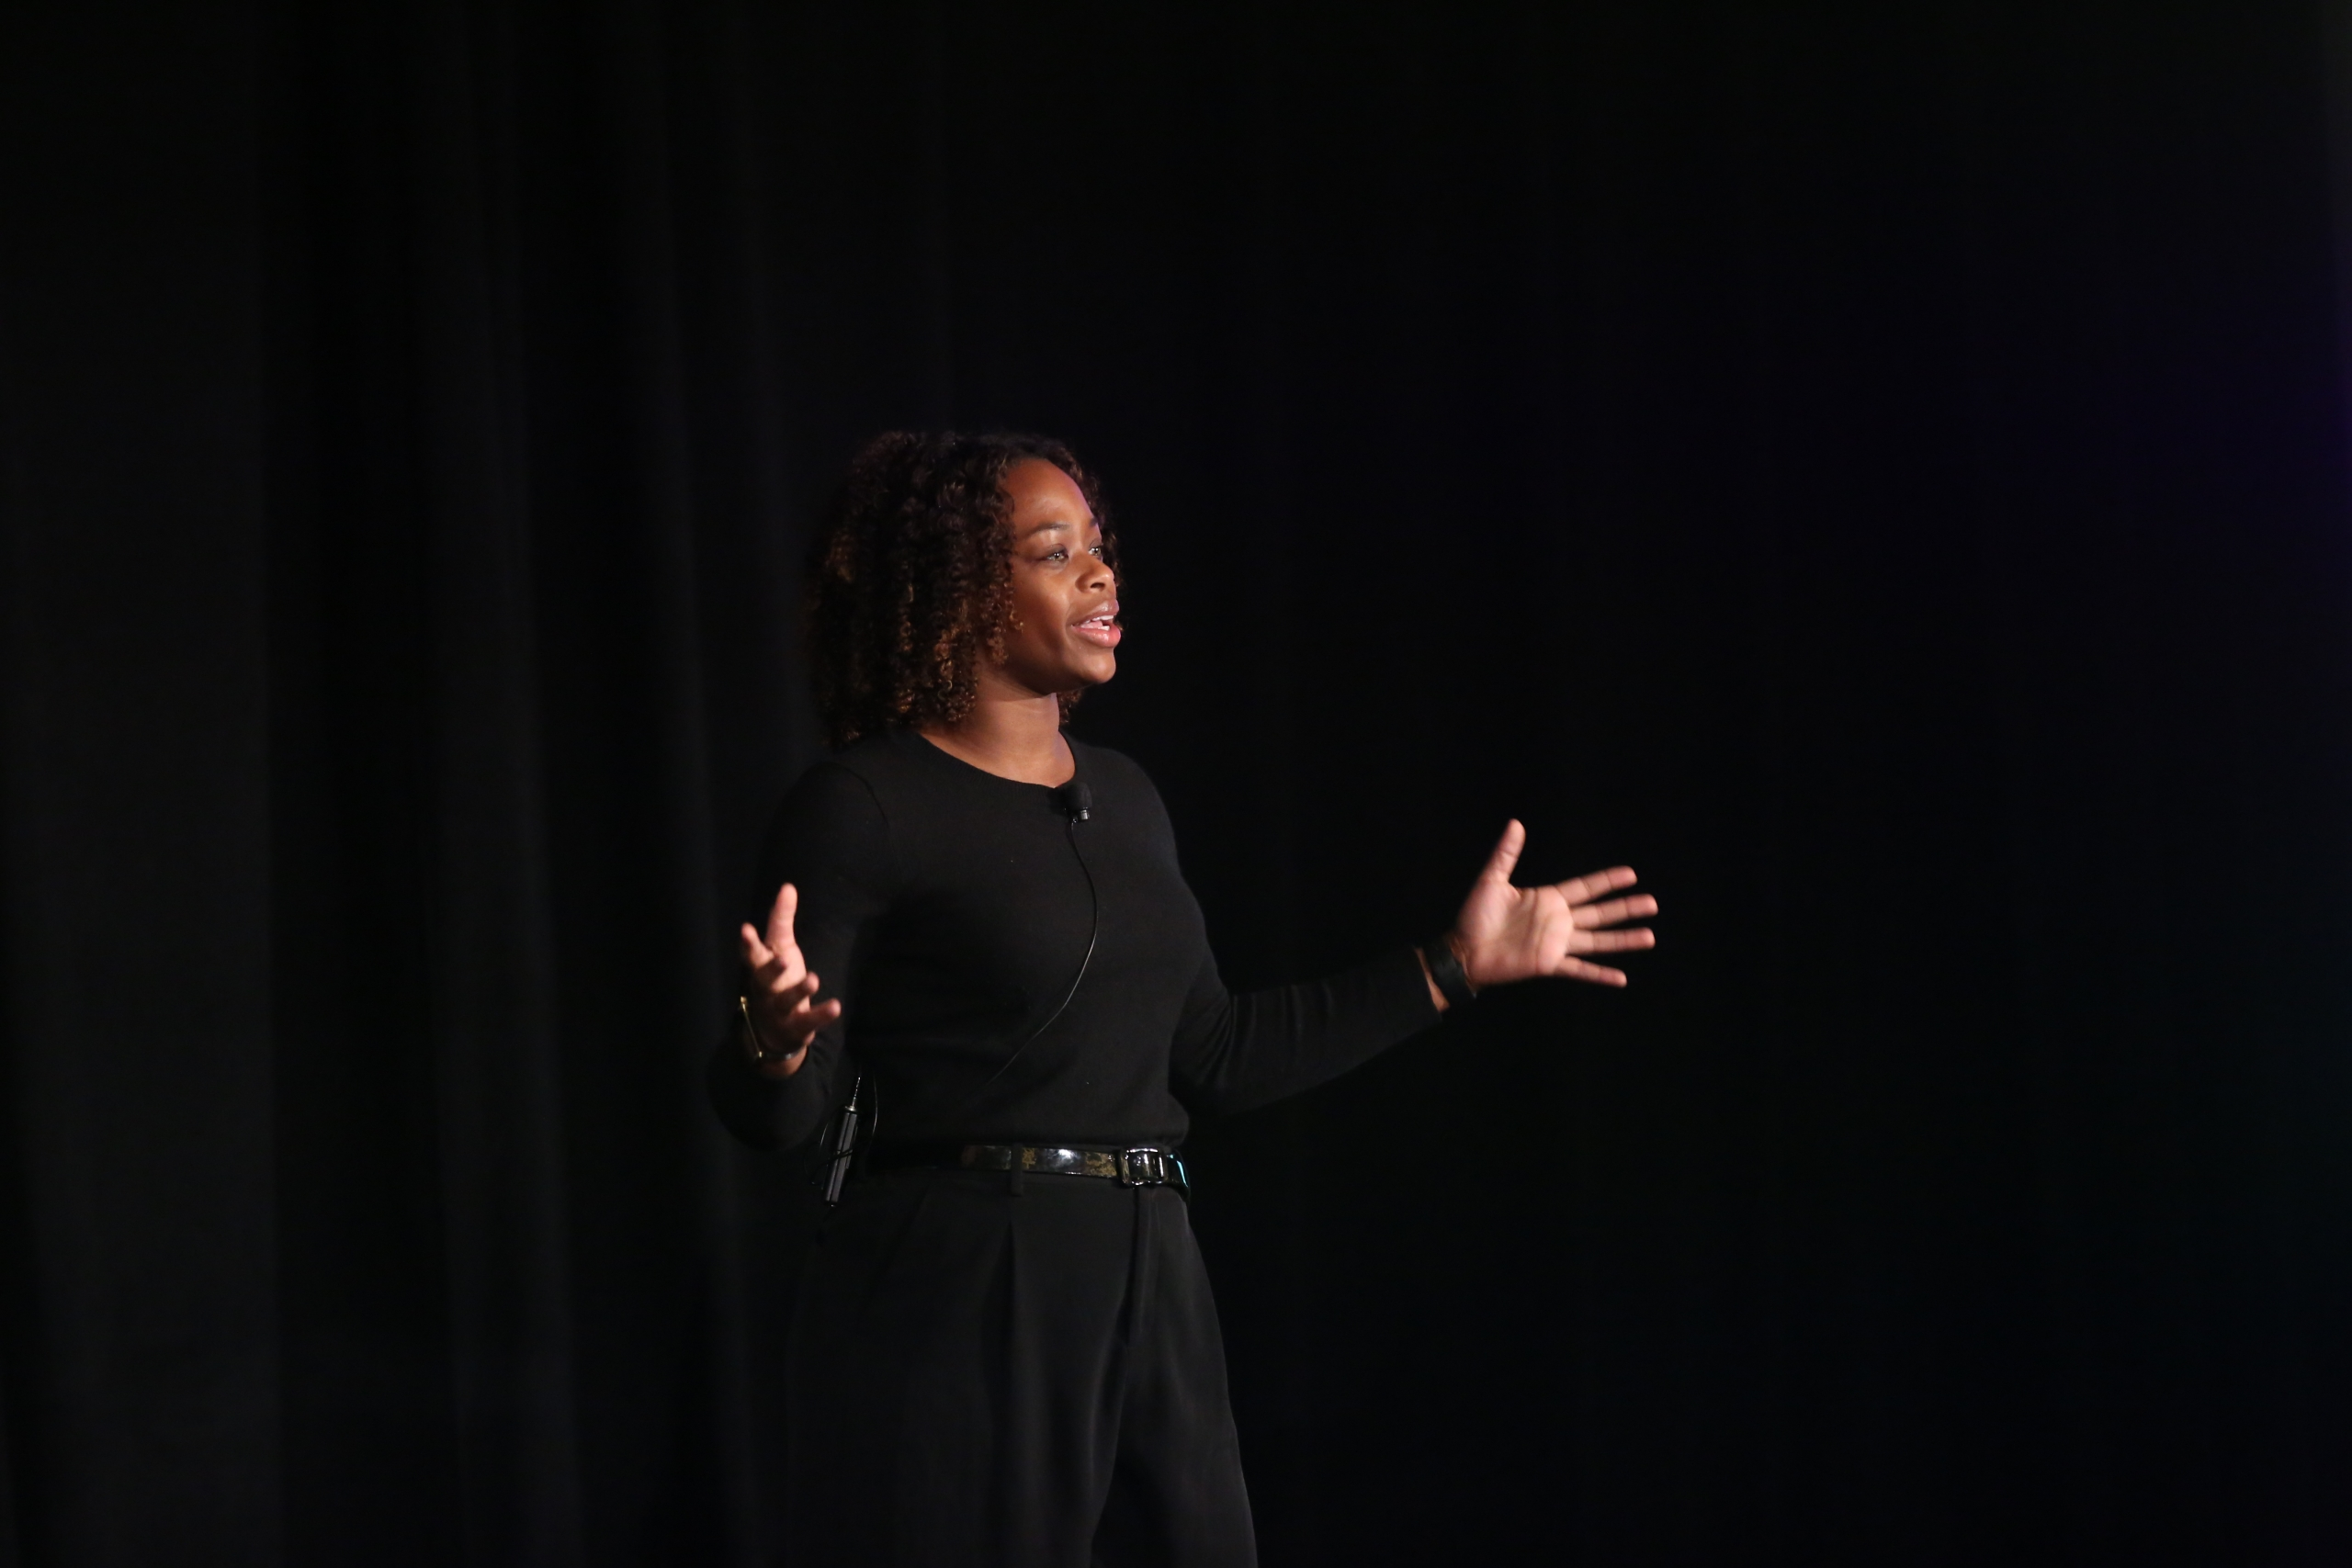 Jessica Brathwaite presents on stage